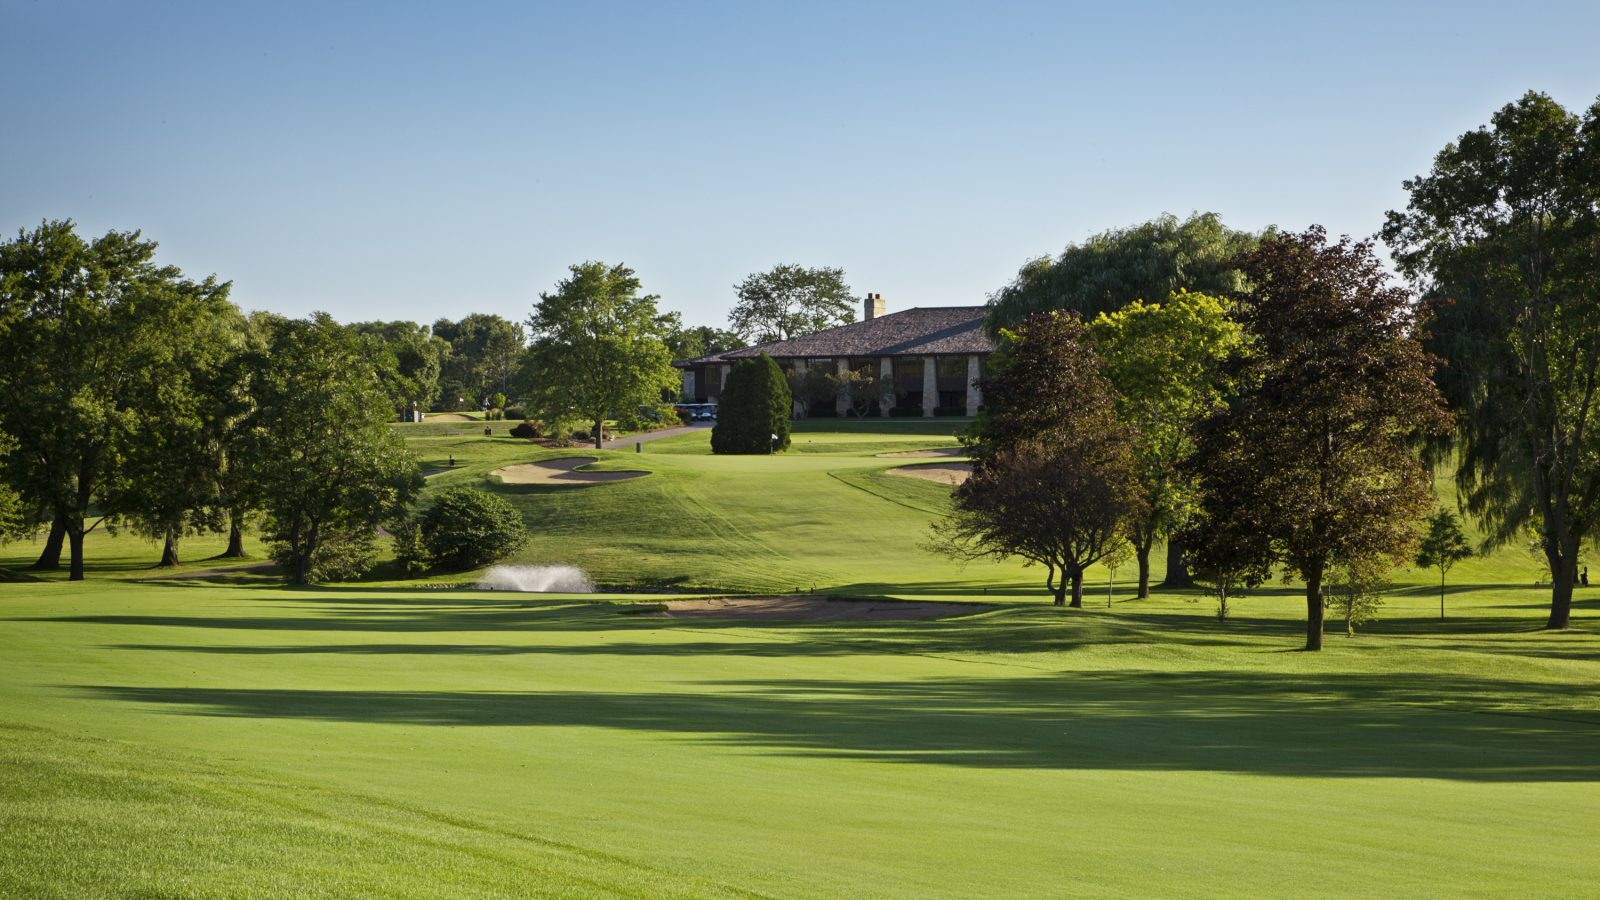 Tuckaway Country Club